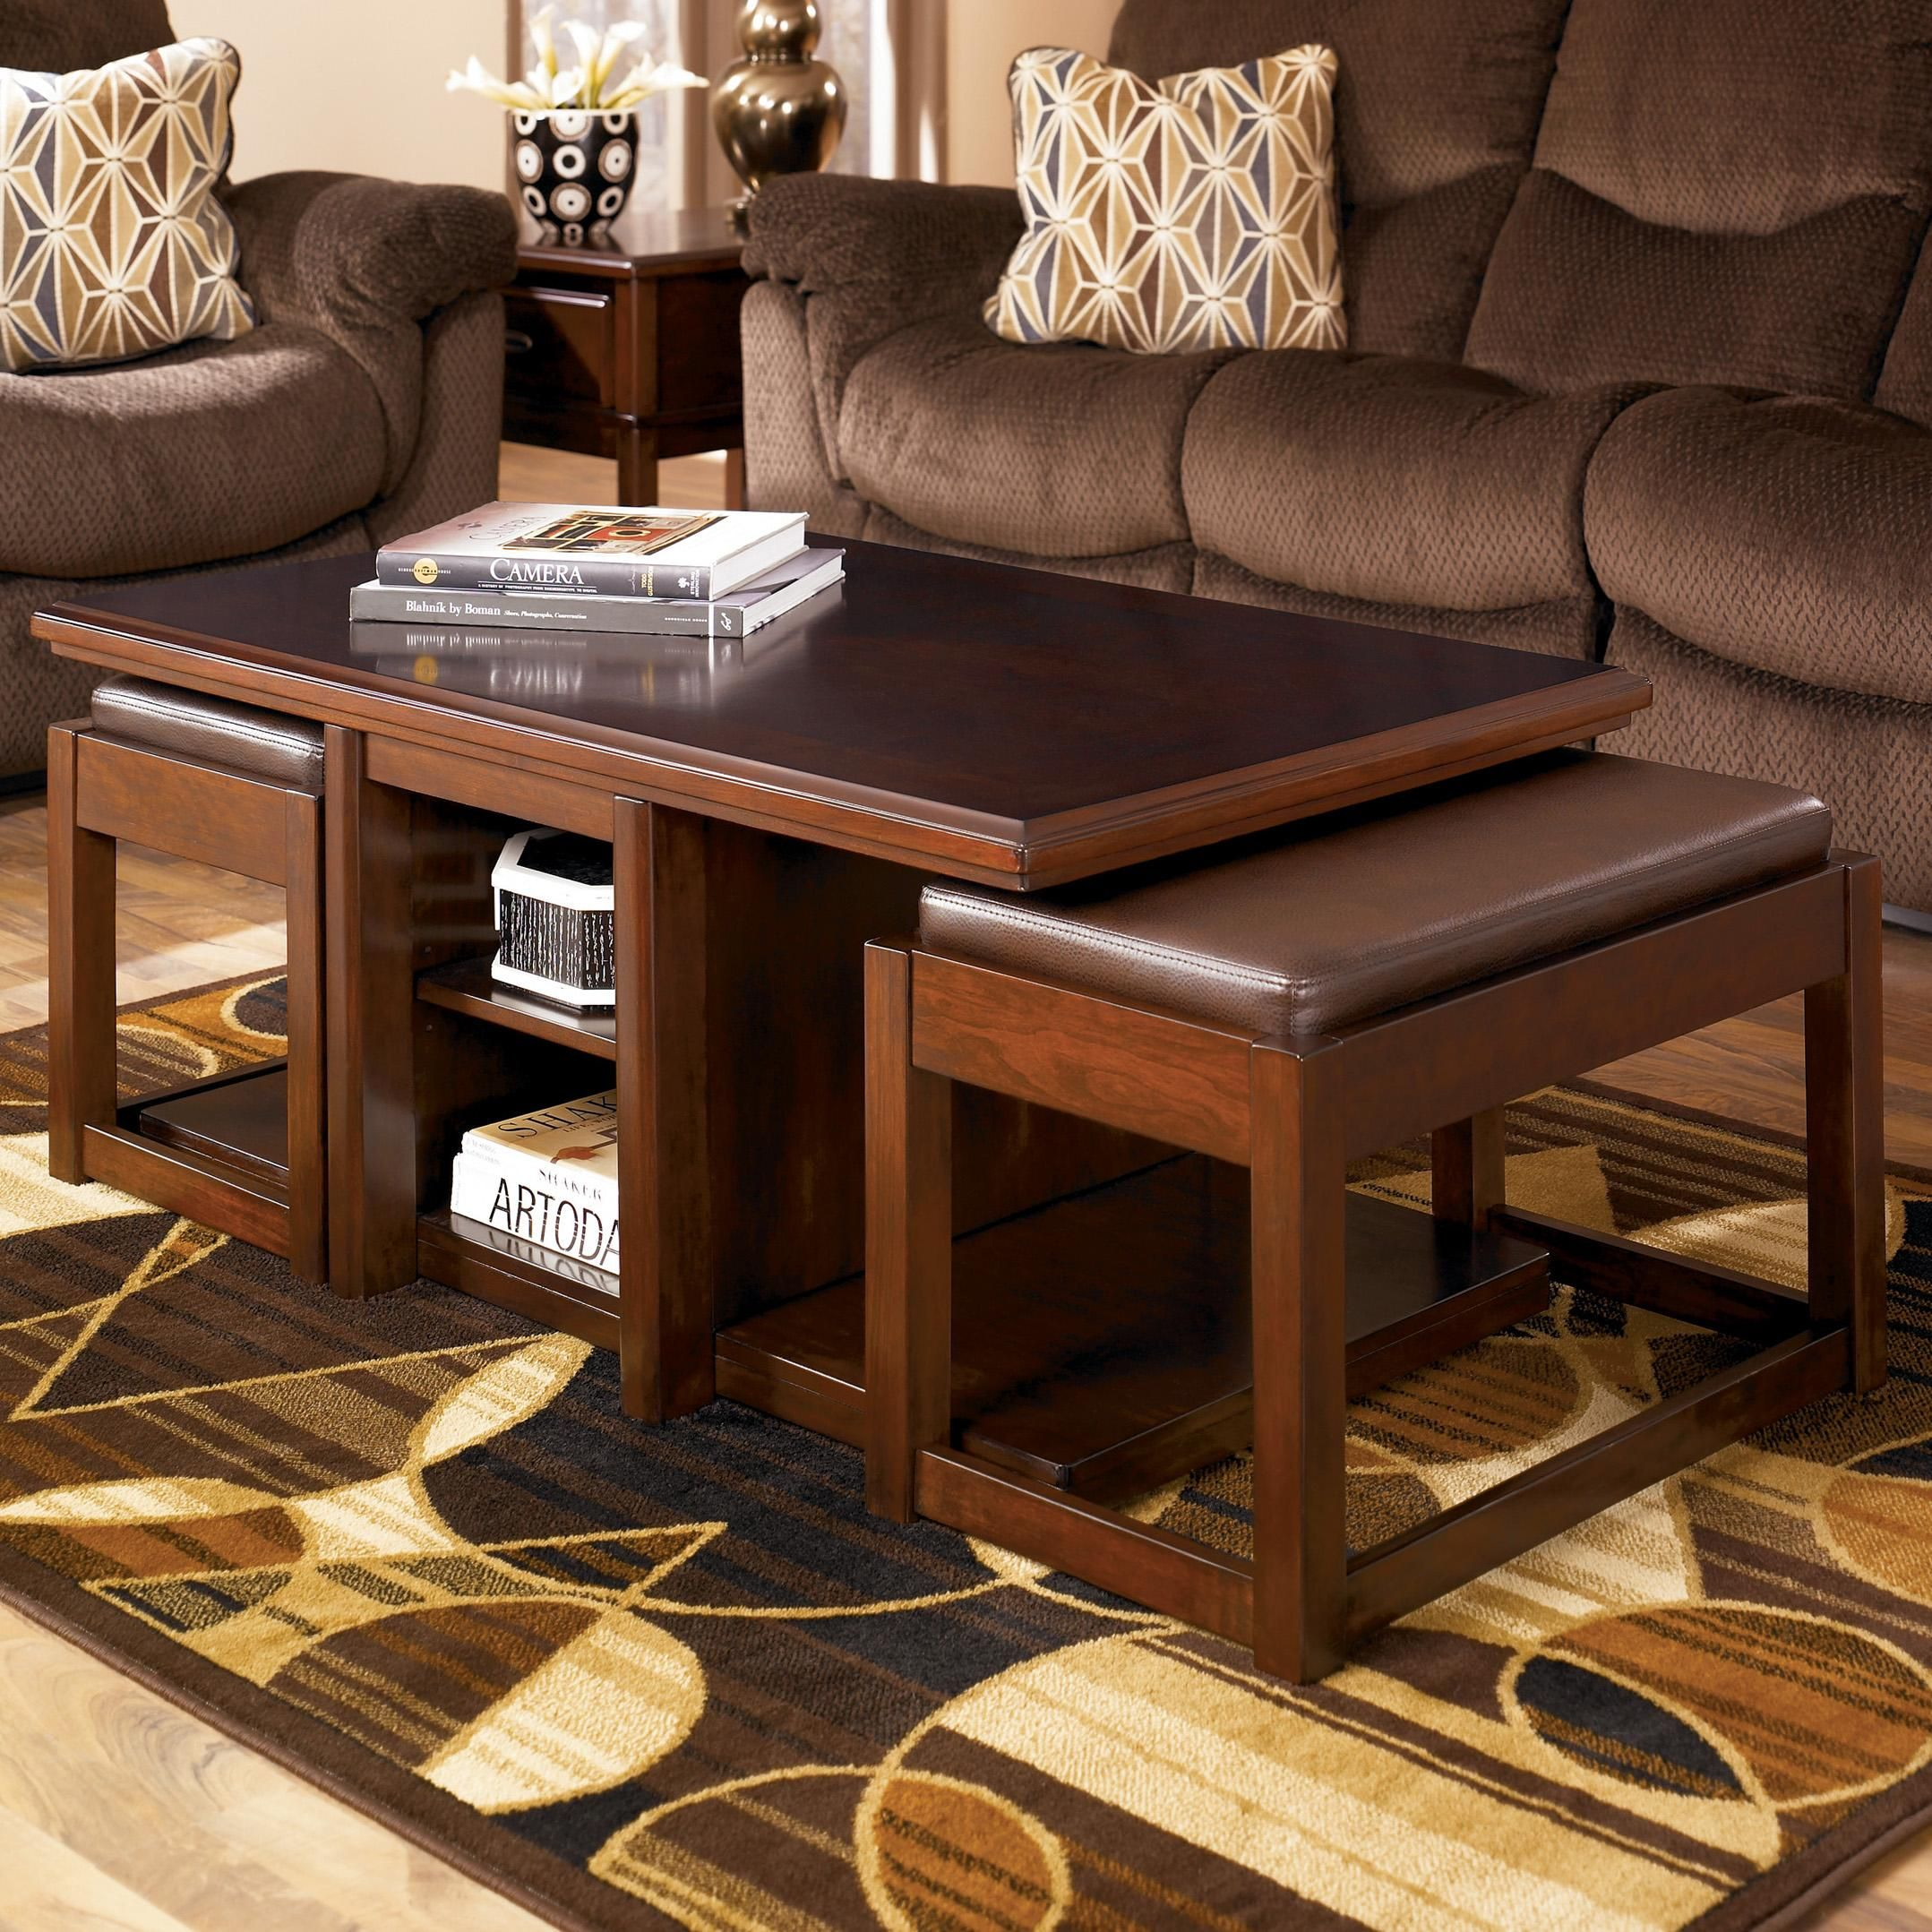 Item Not Found Stylish Coffee Table Coffee Table With Stools Ottoman In Living Room [ 2157 x 2157 Pixel ]